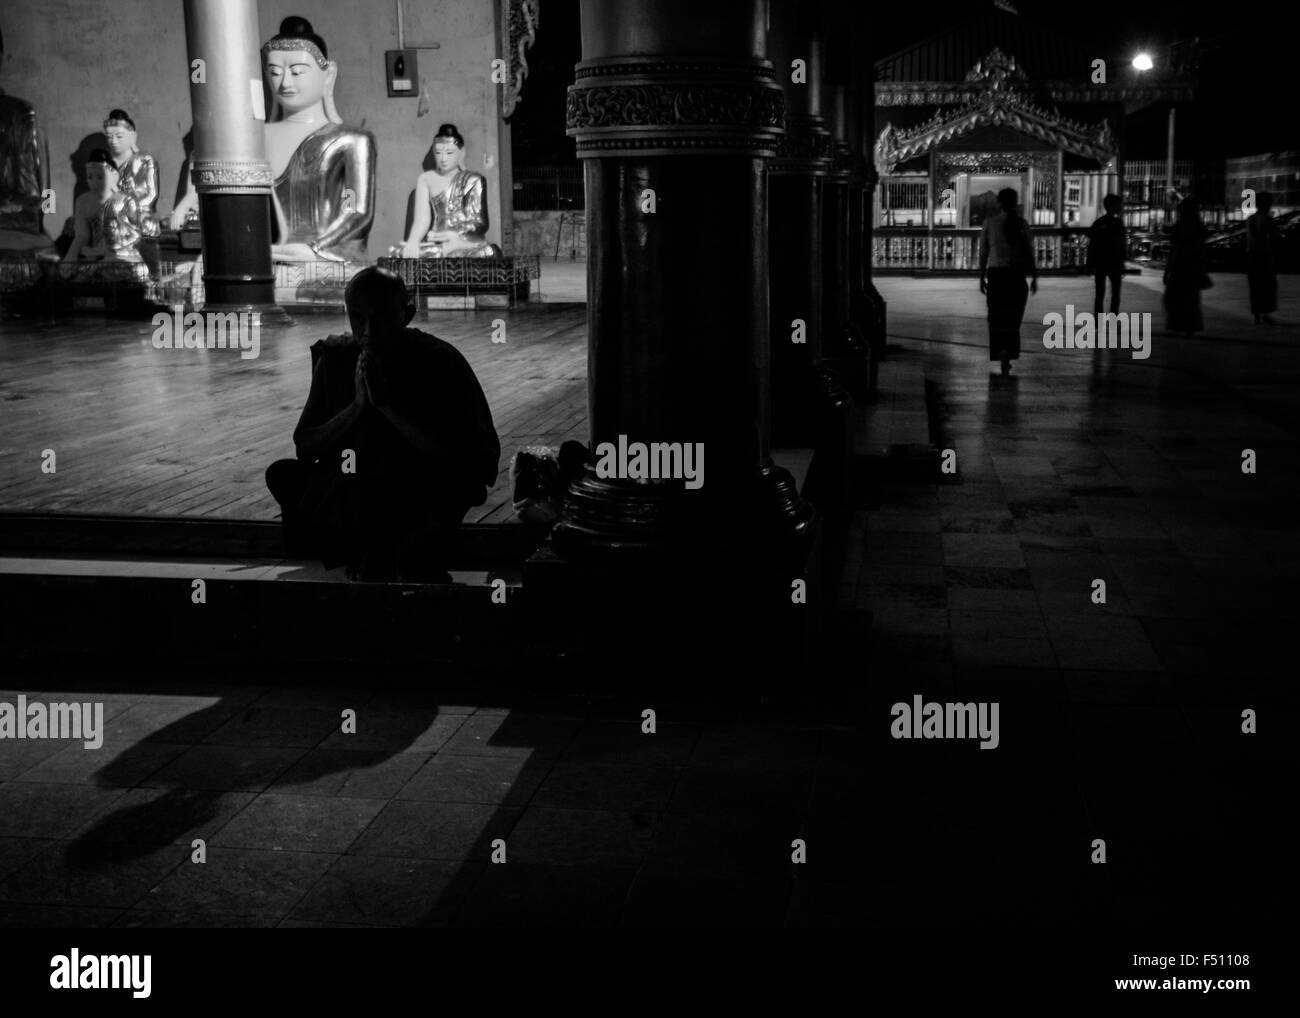 A monk praying in a temple at the Shwedagon  Pagoda in Yangon, Myanmar - Stock Image